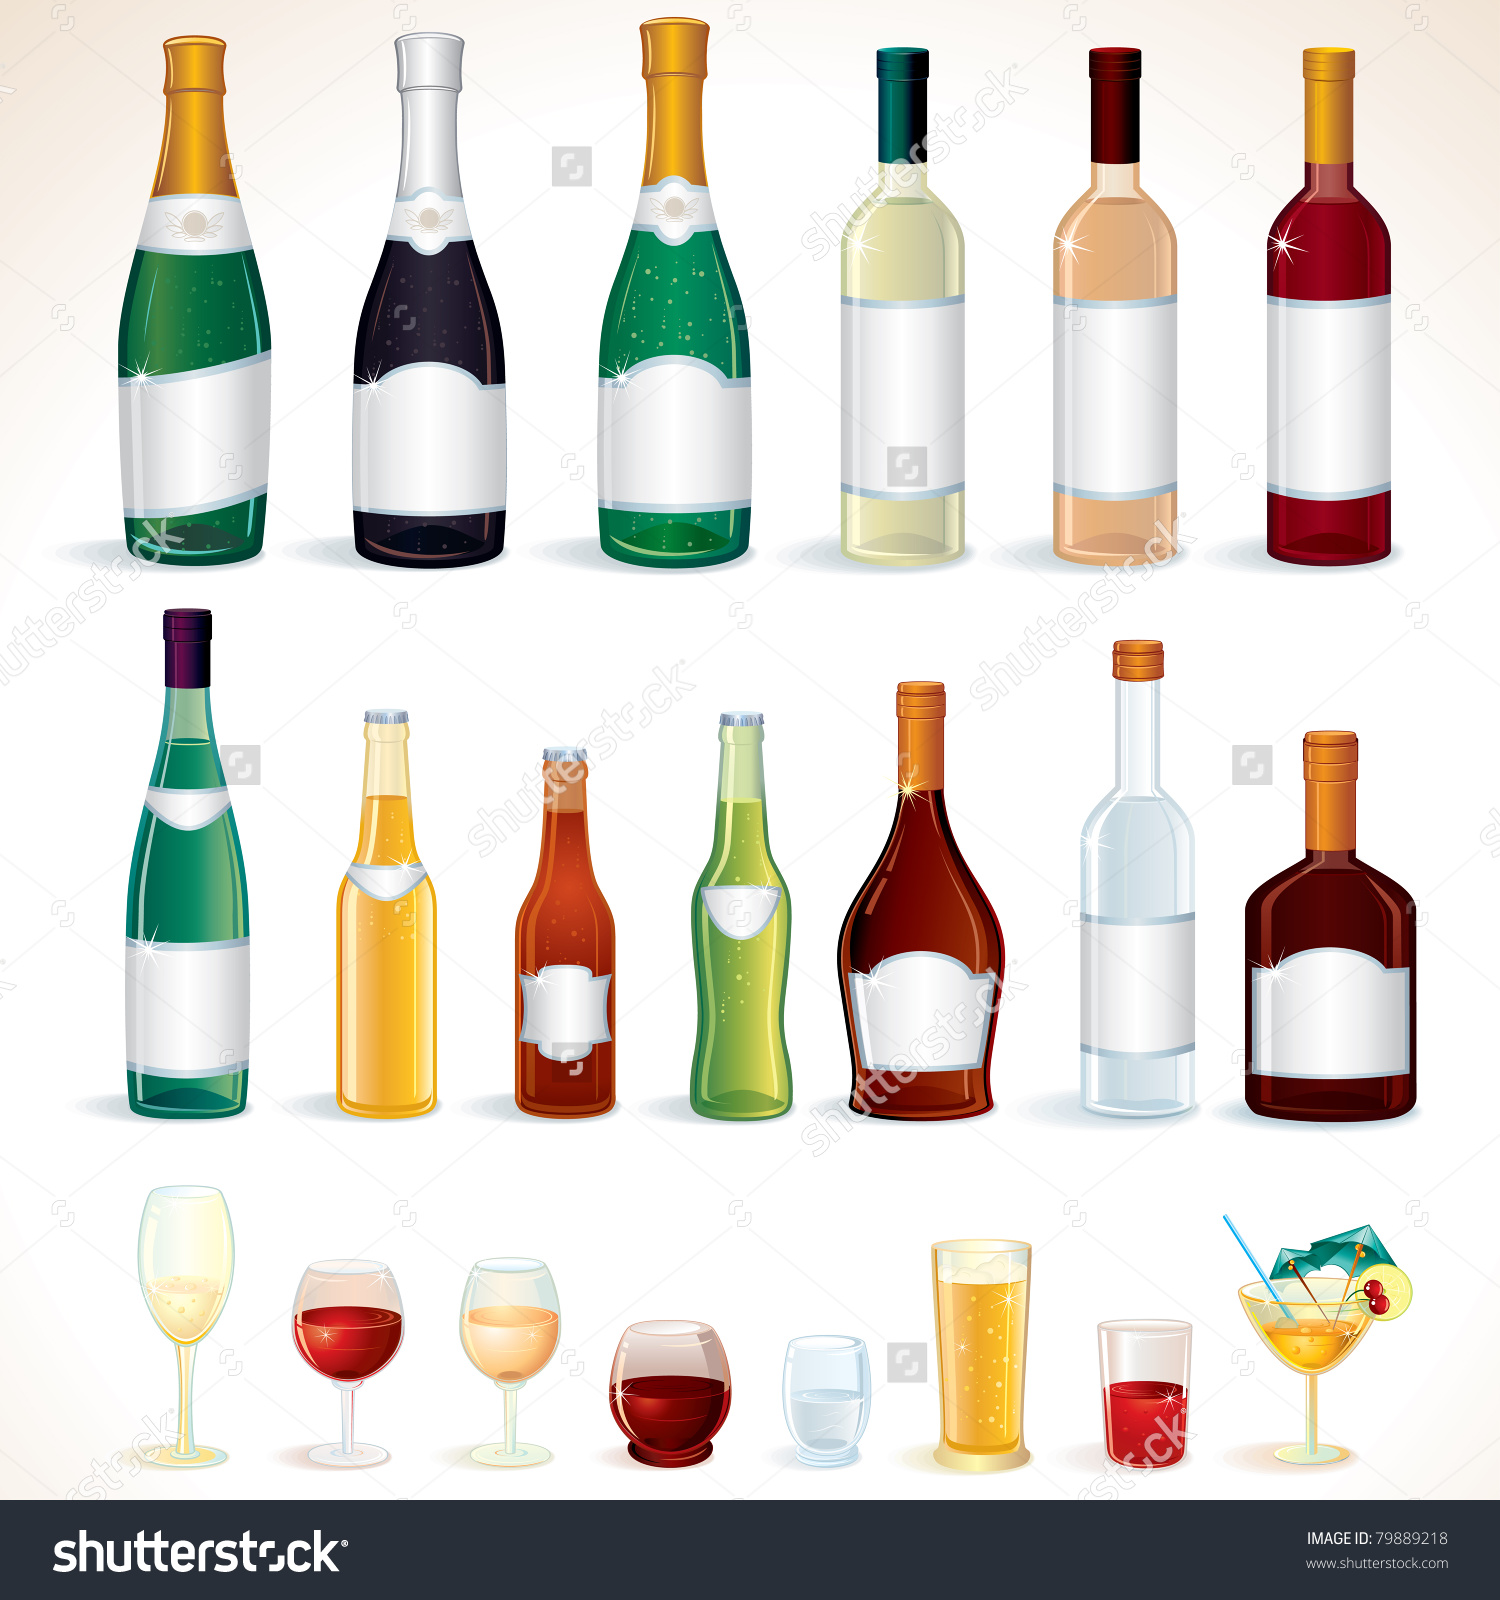 Booze cliparts free download. Drink clipart spirit alcohol